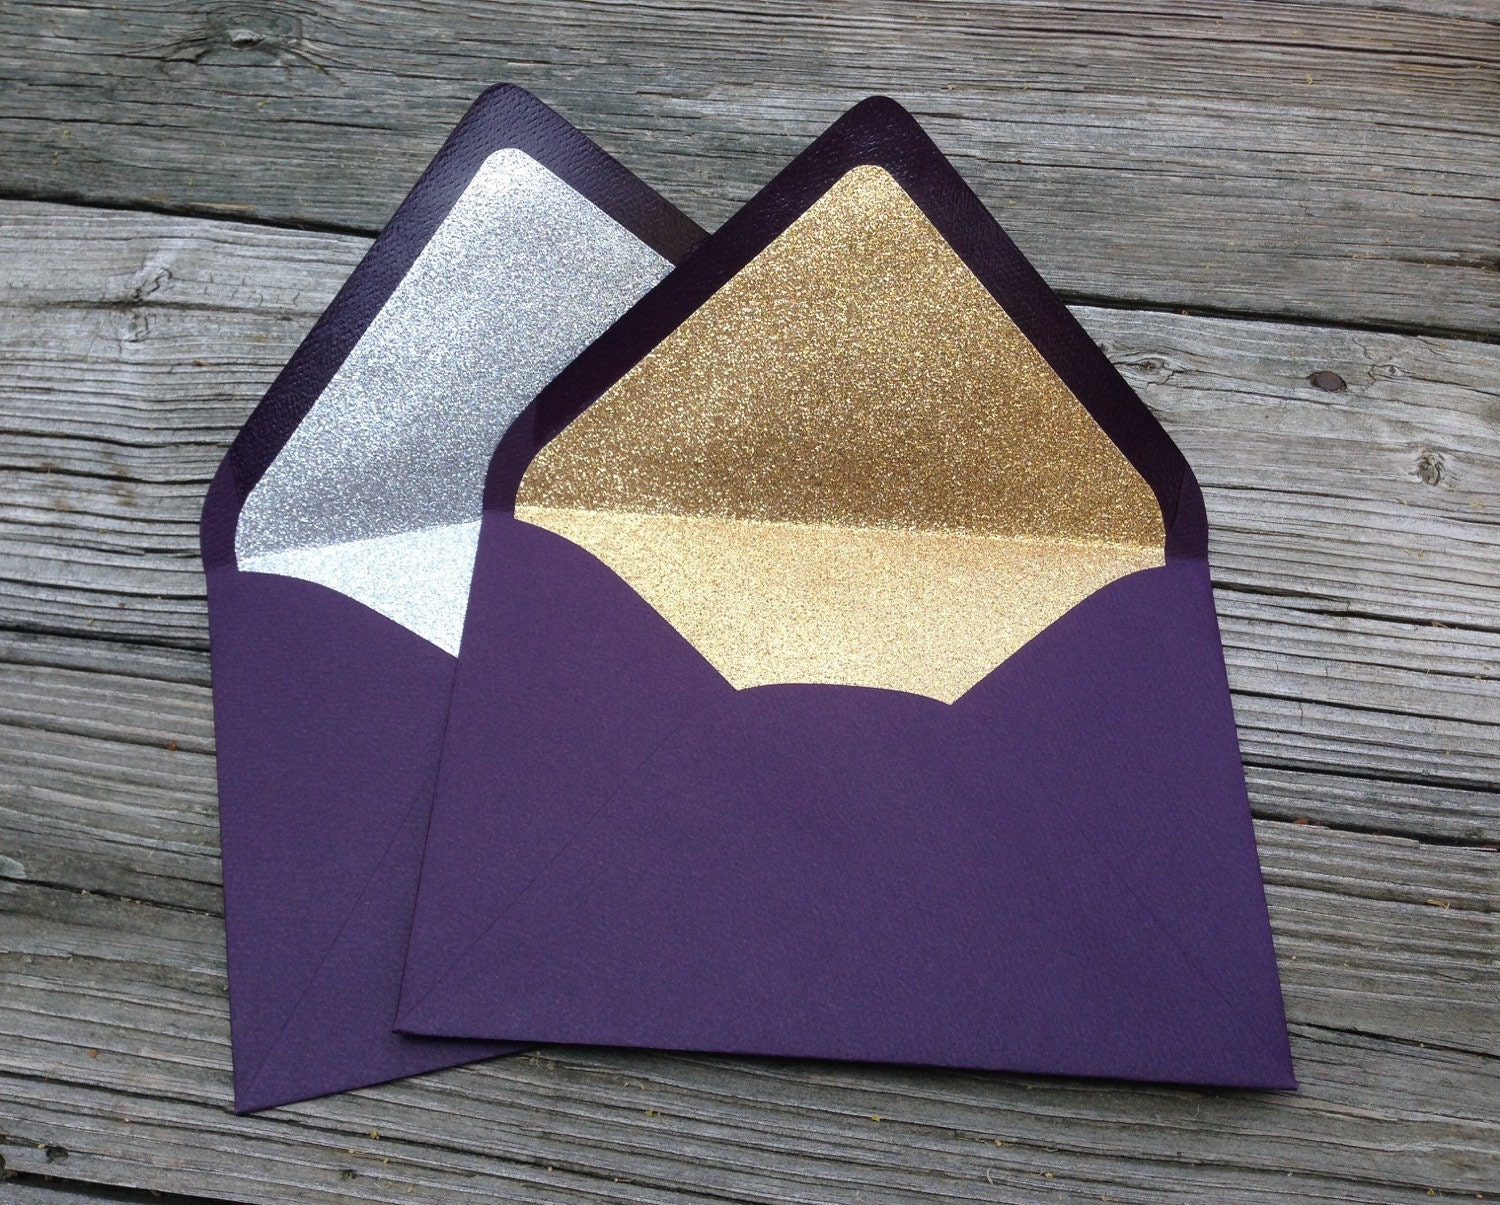 aubergine dark purple pink a7 5x7 gold or silver by